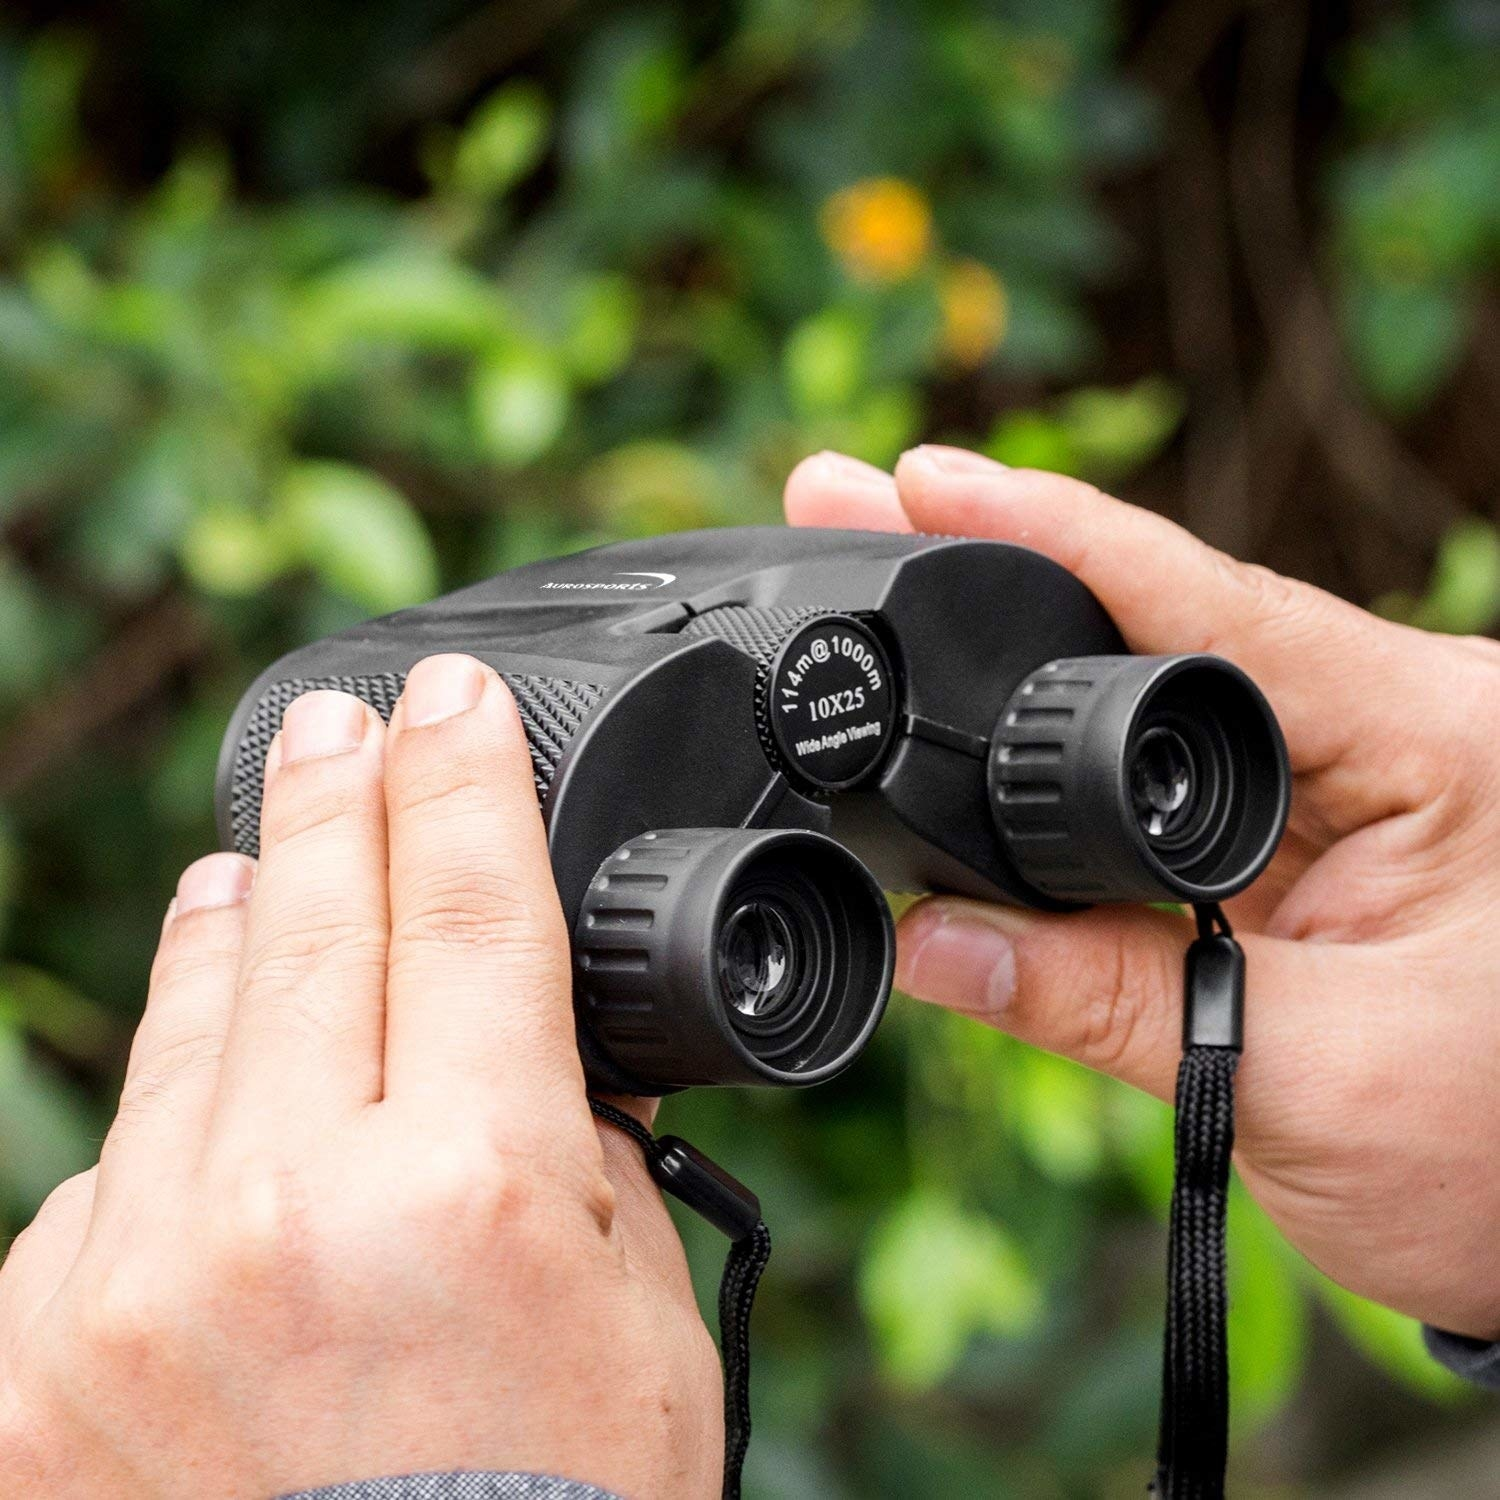 hands holding small black binoculars